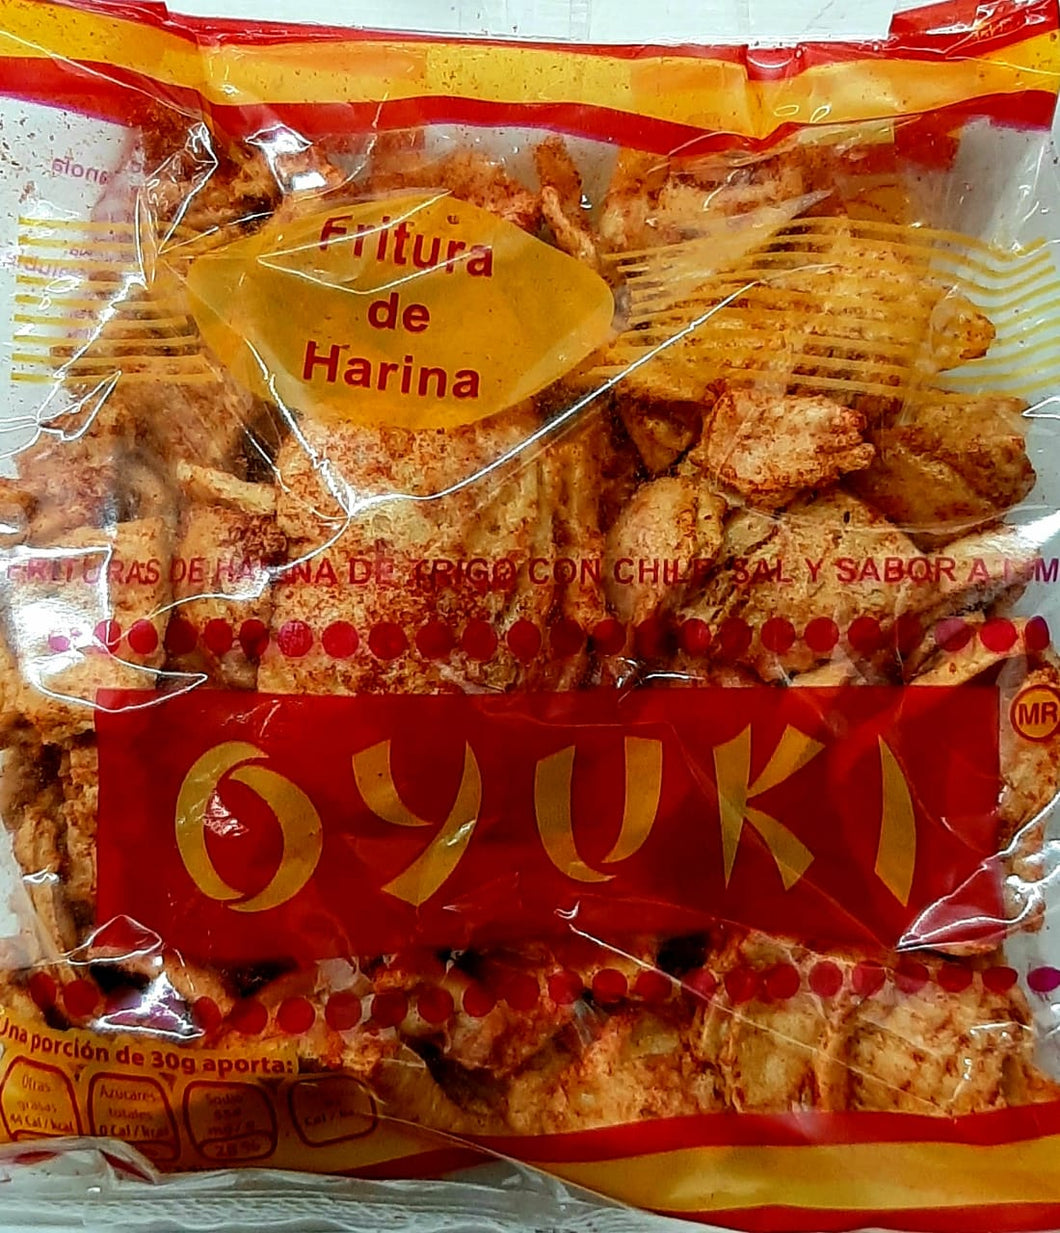 OYUKI Chicharron 1 pza